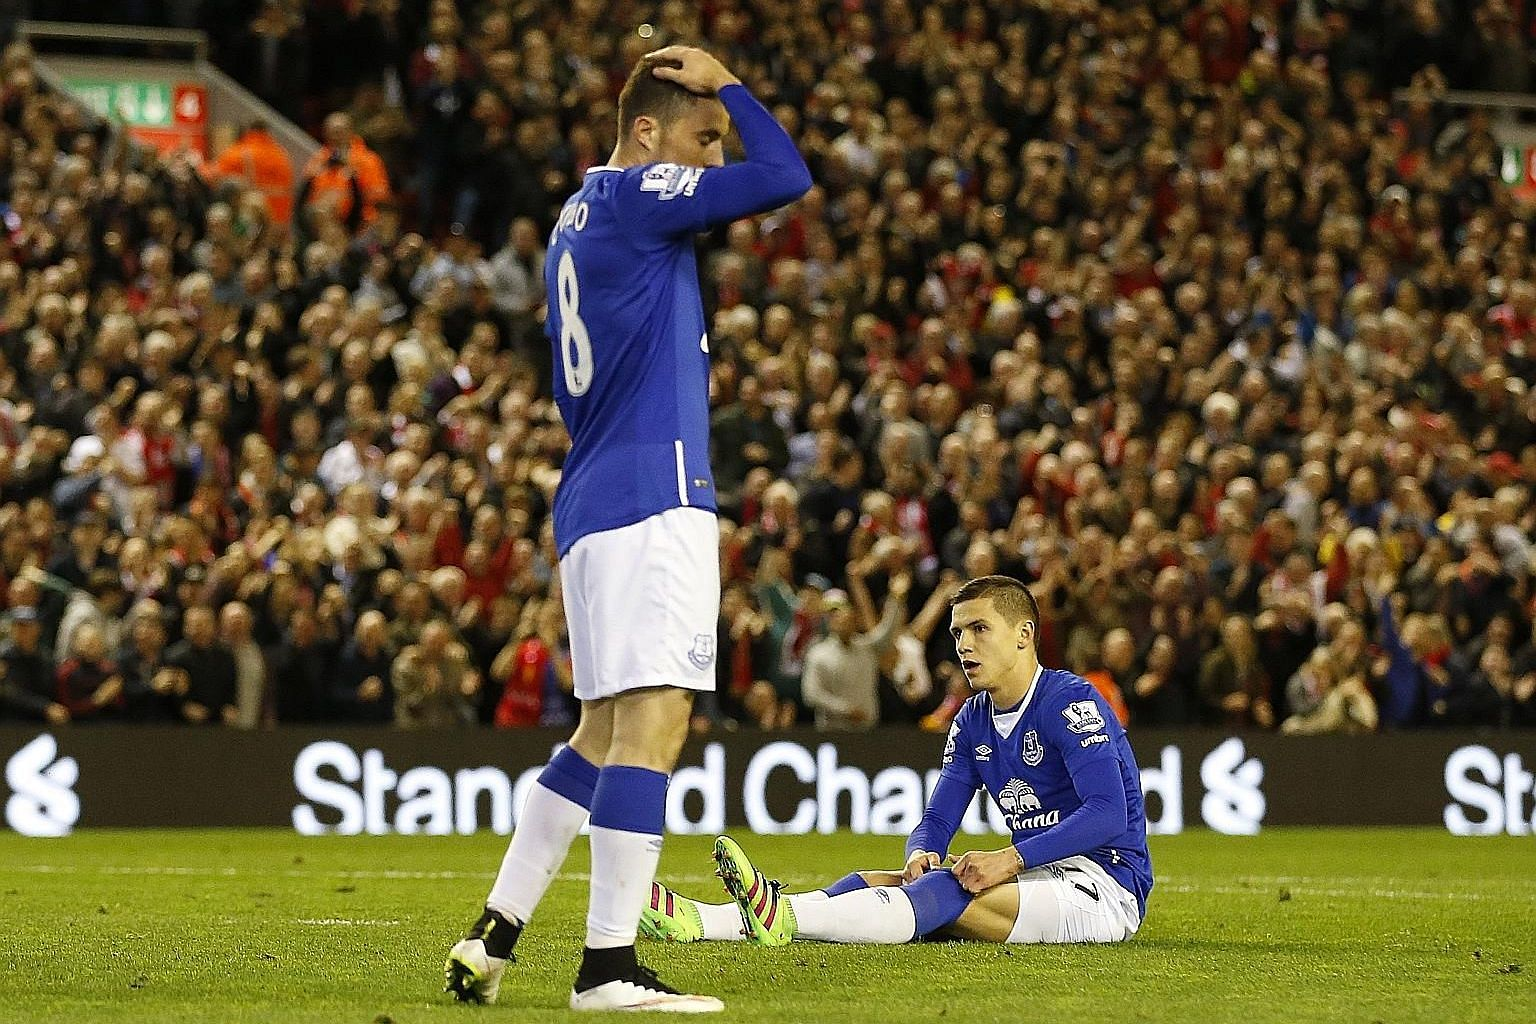 The pain is evident in the body language of Everton duo Muhamed Besic (sitting) and Bryan Oviedo after the 4-0 defeat at the hands of Liverpool on Wednesday. Roberto Martinez has challenged his side, suffering their worst season at home in the 138-ye